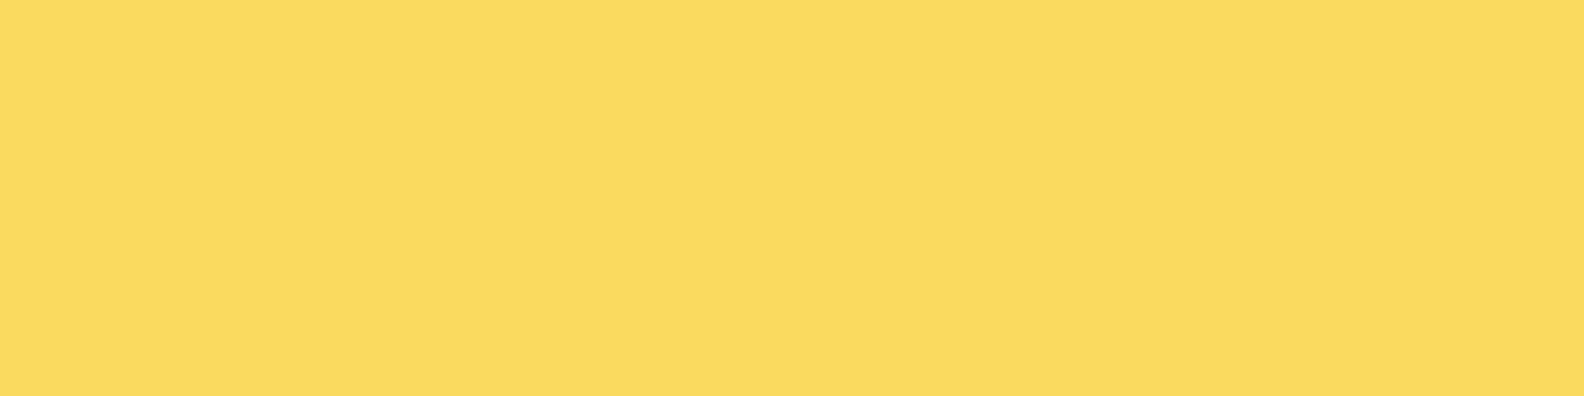 1584x396 Stil De Grain Yellow Solid Color Background